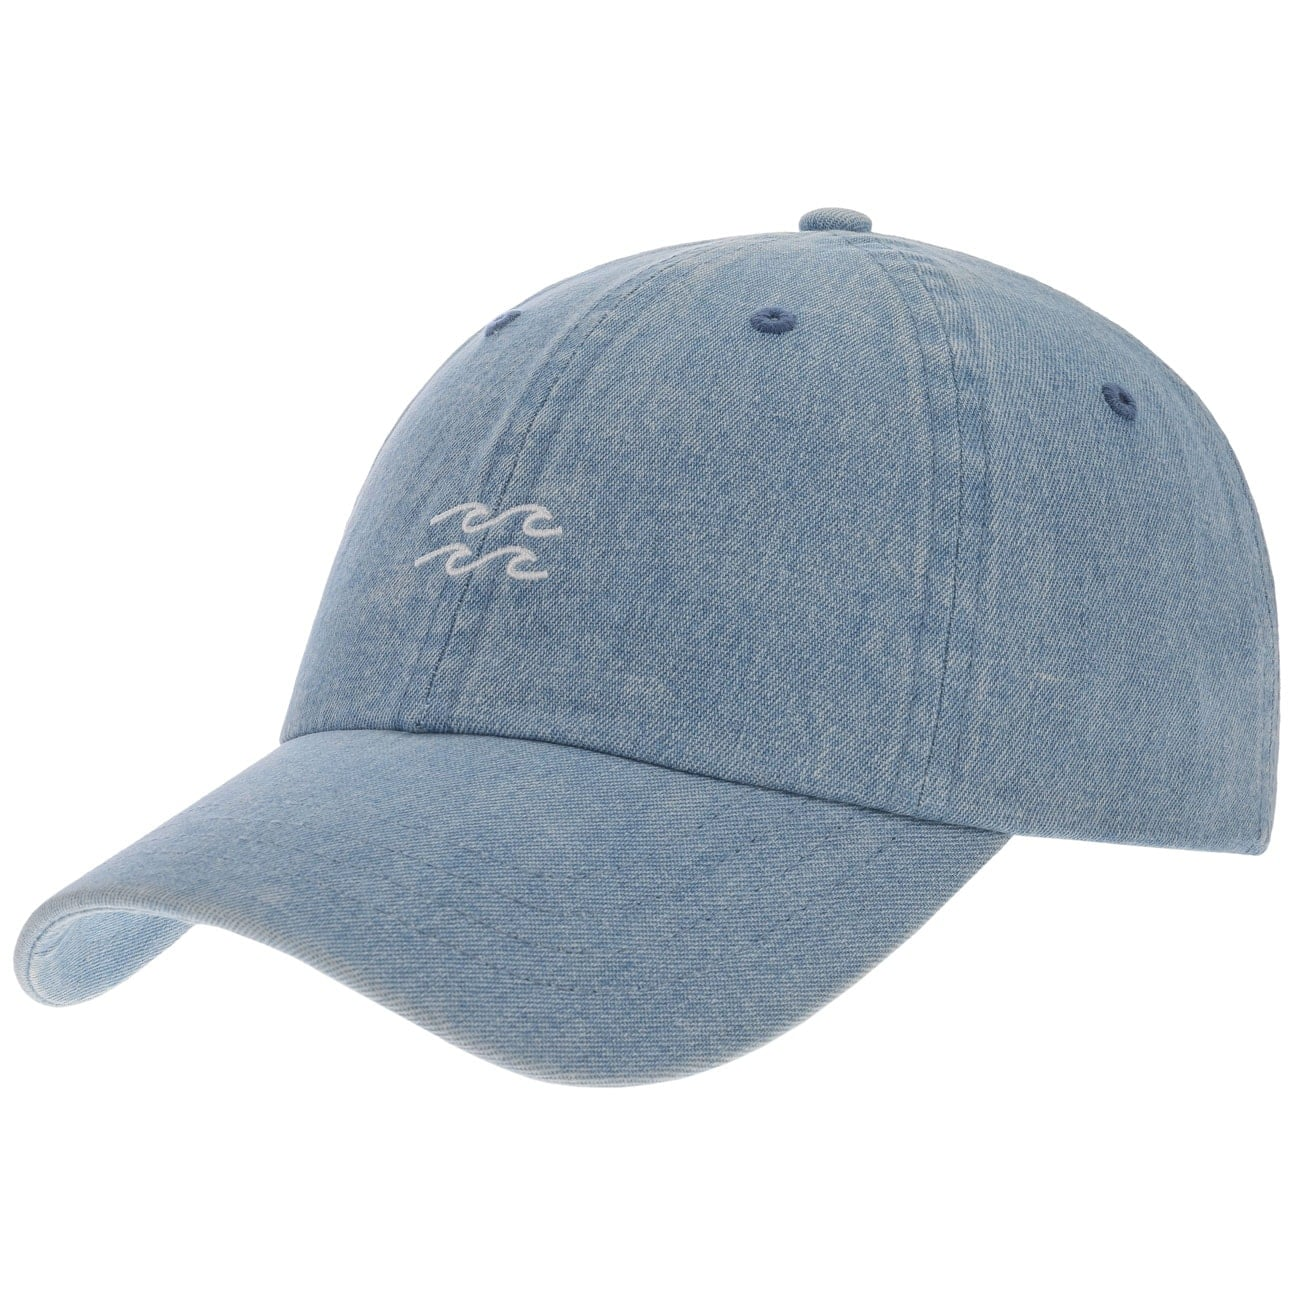 Gorra Stacked Denim Strapback by Billabong  gorra de baseball